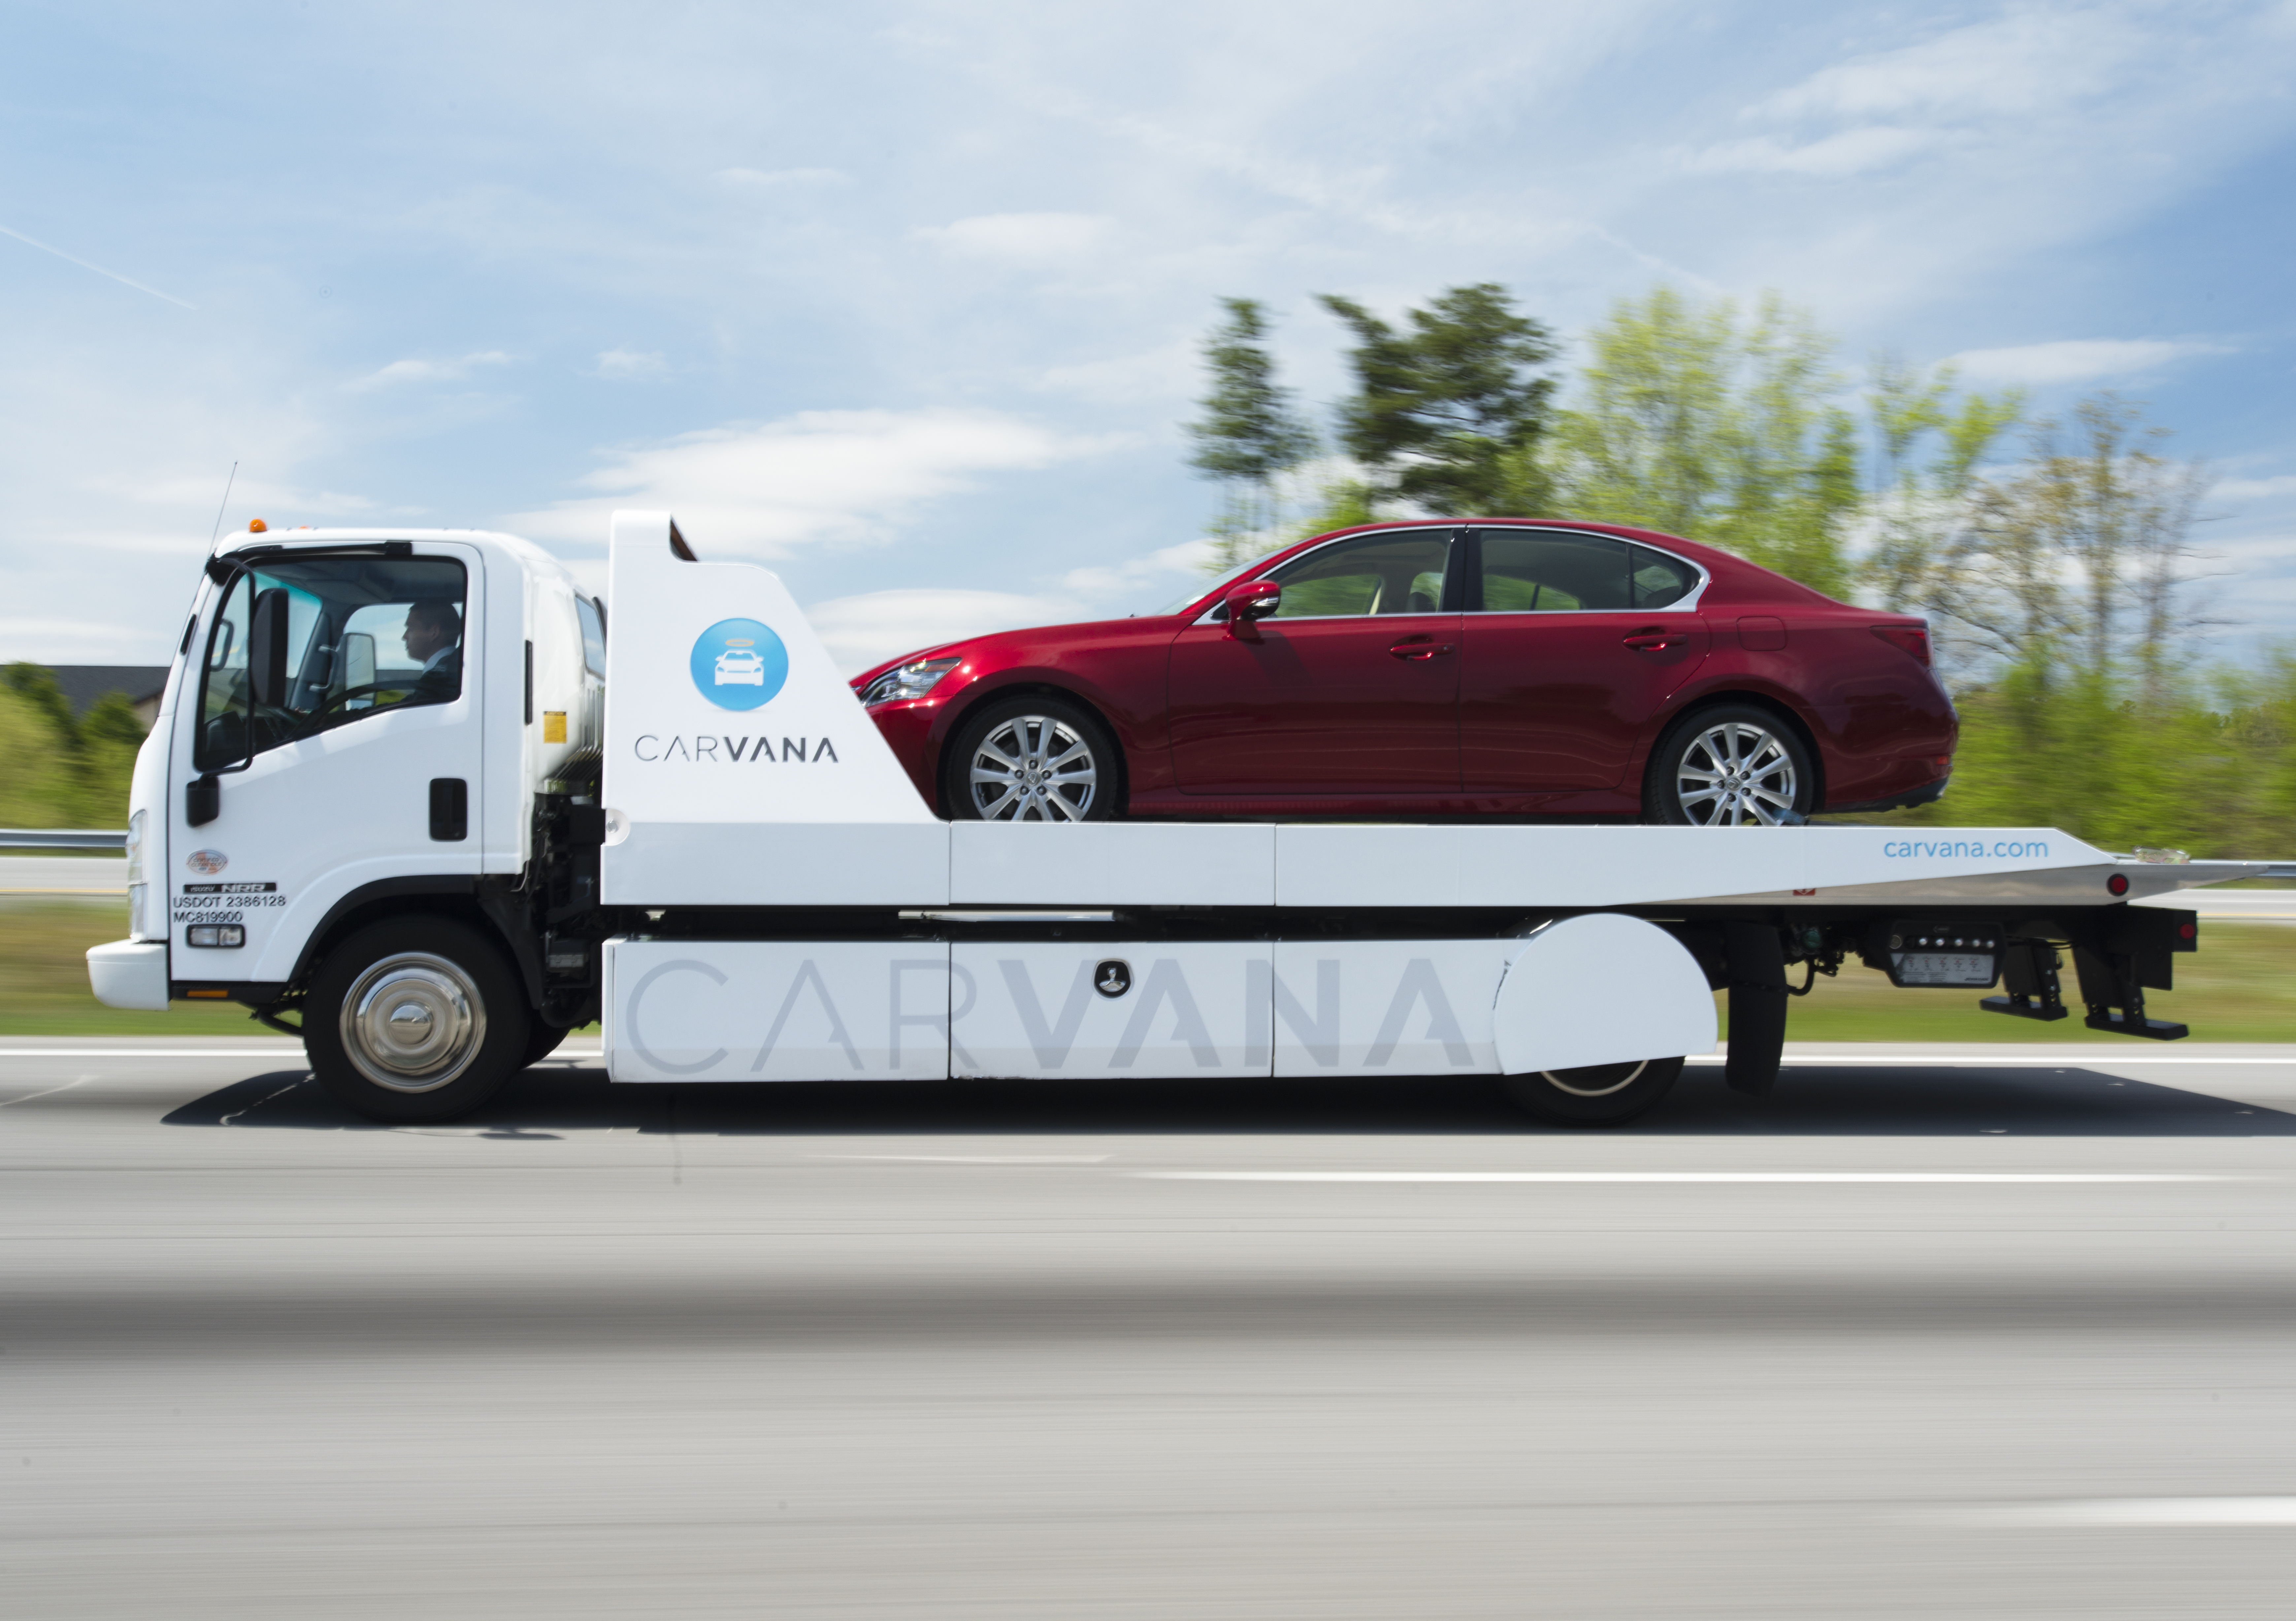 Carvana Shows Colorado the New Way to Buy a Car with Denver Market